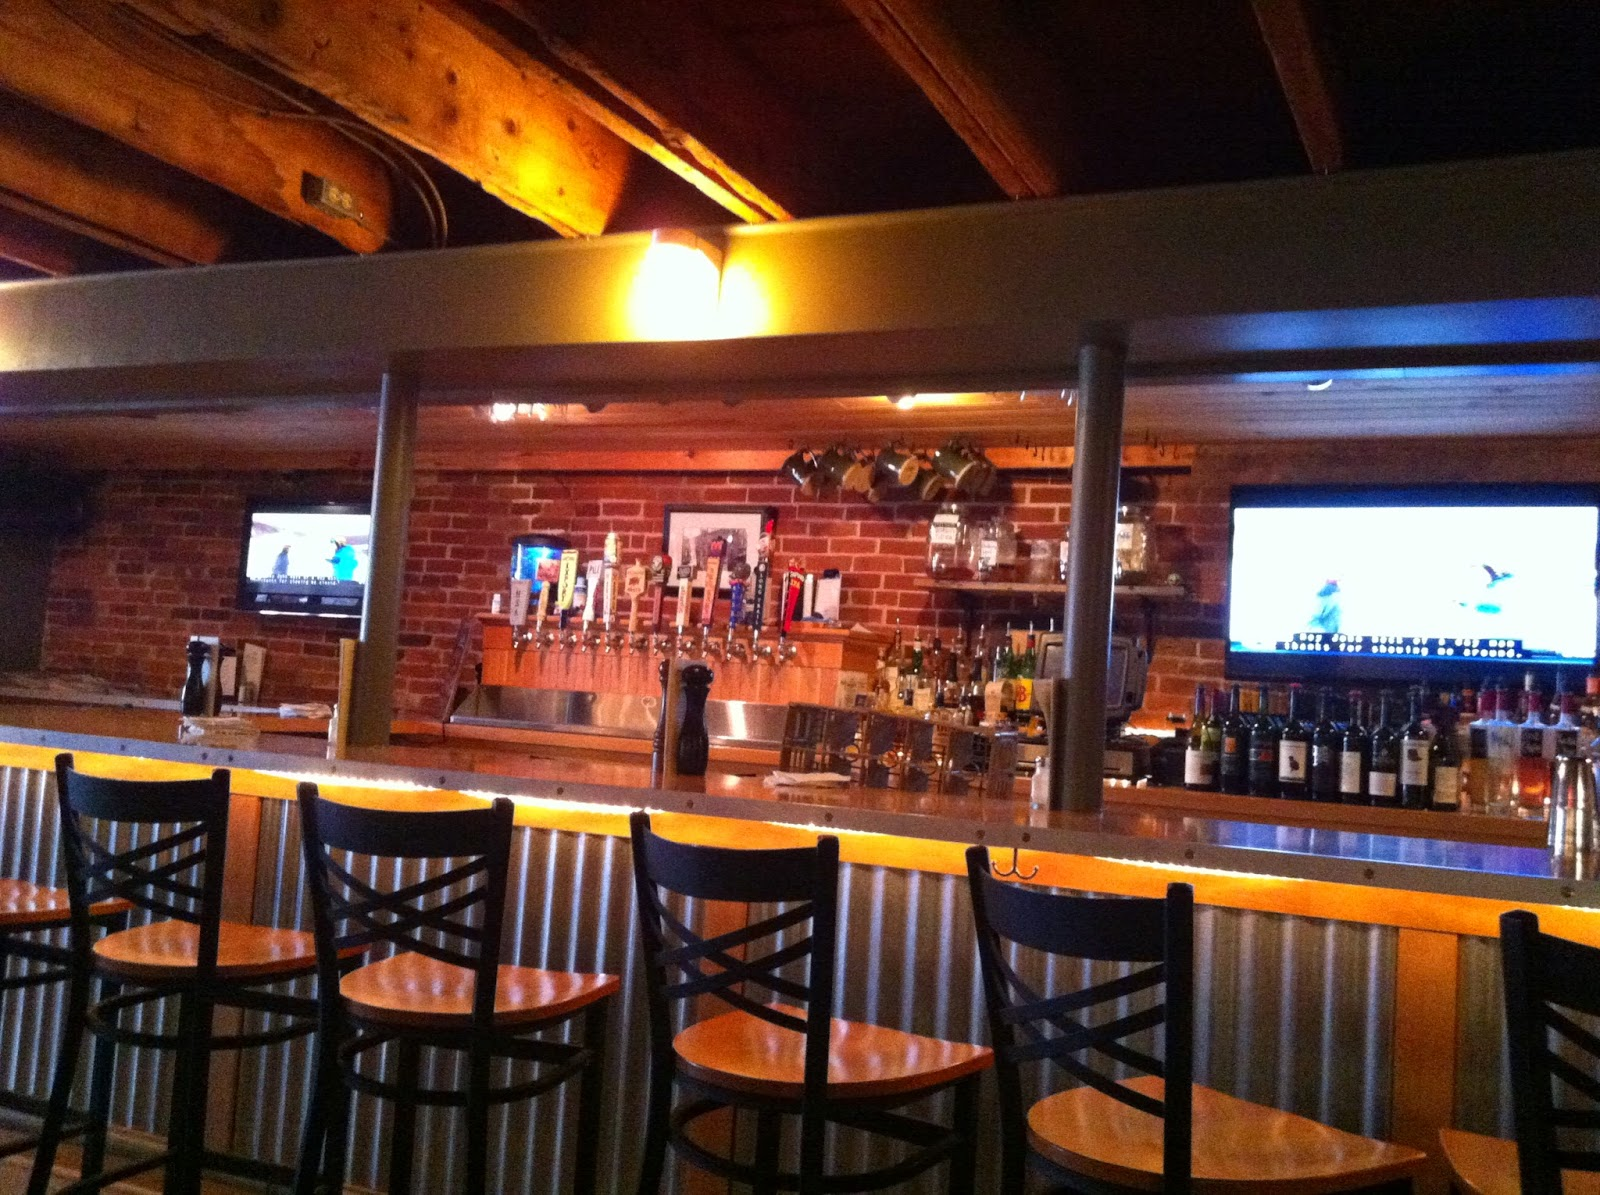 Photo of Bar Area at Dogfish Bar and Grille by Don Taylor | CC BY CA